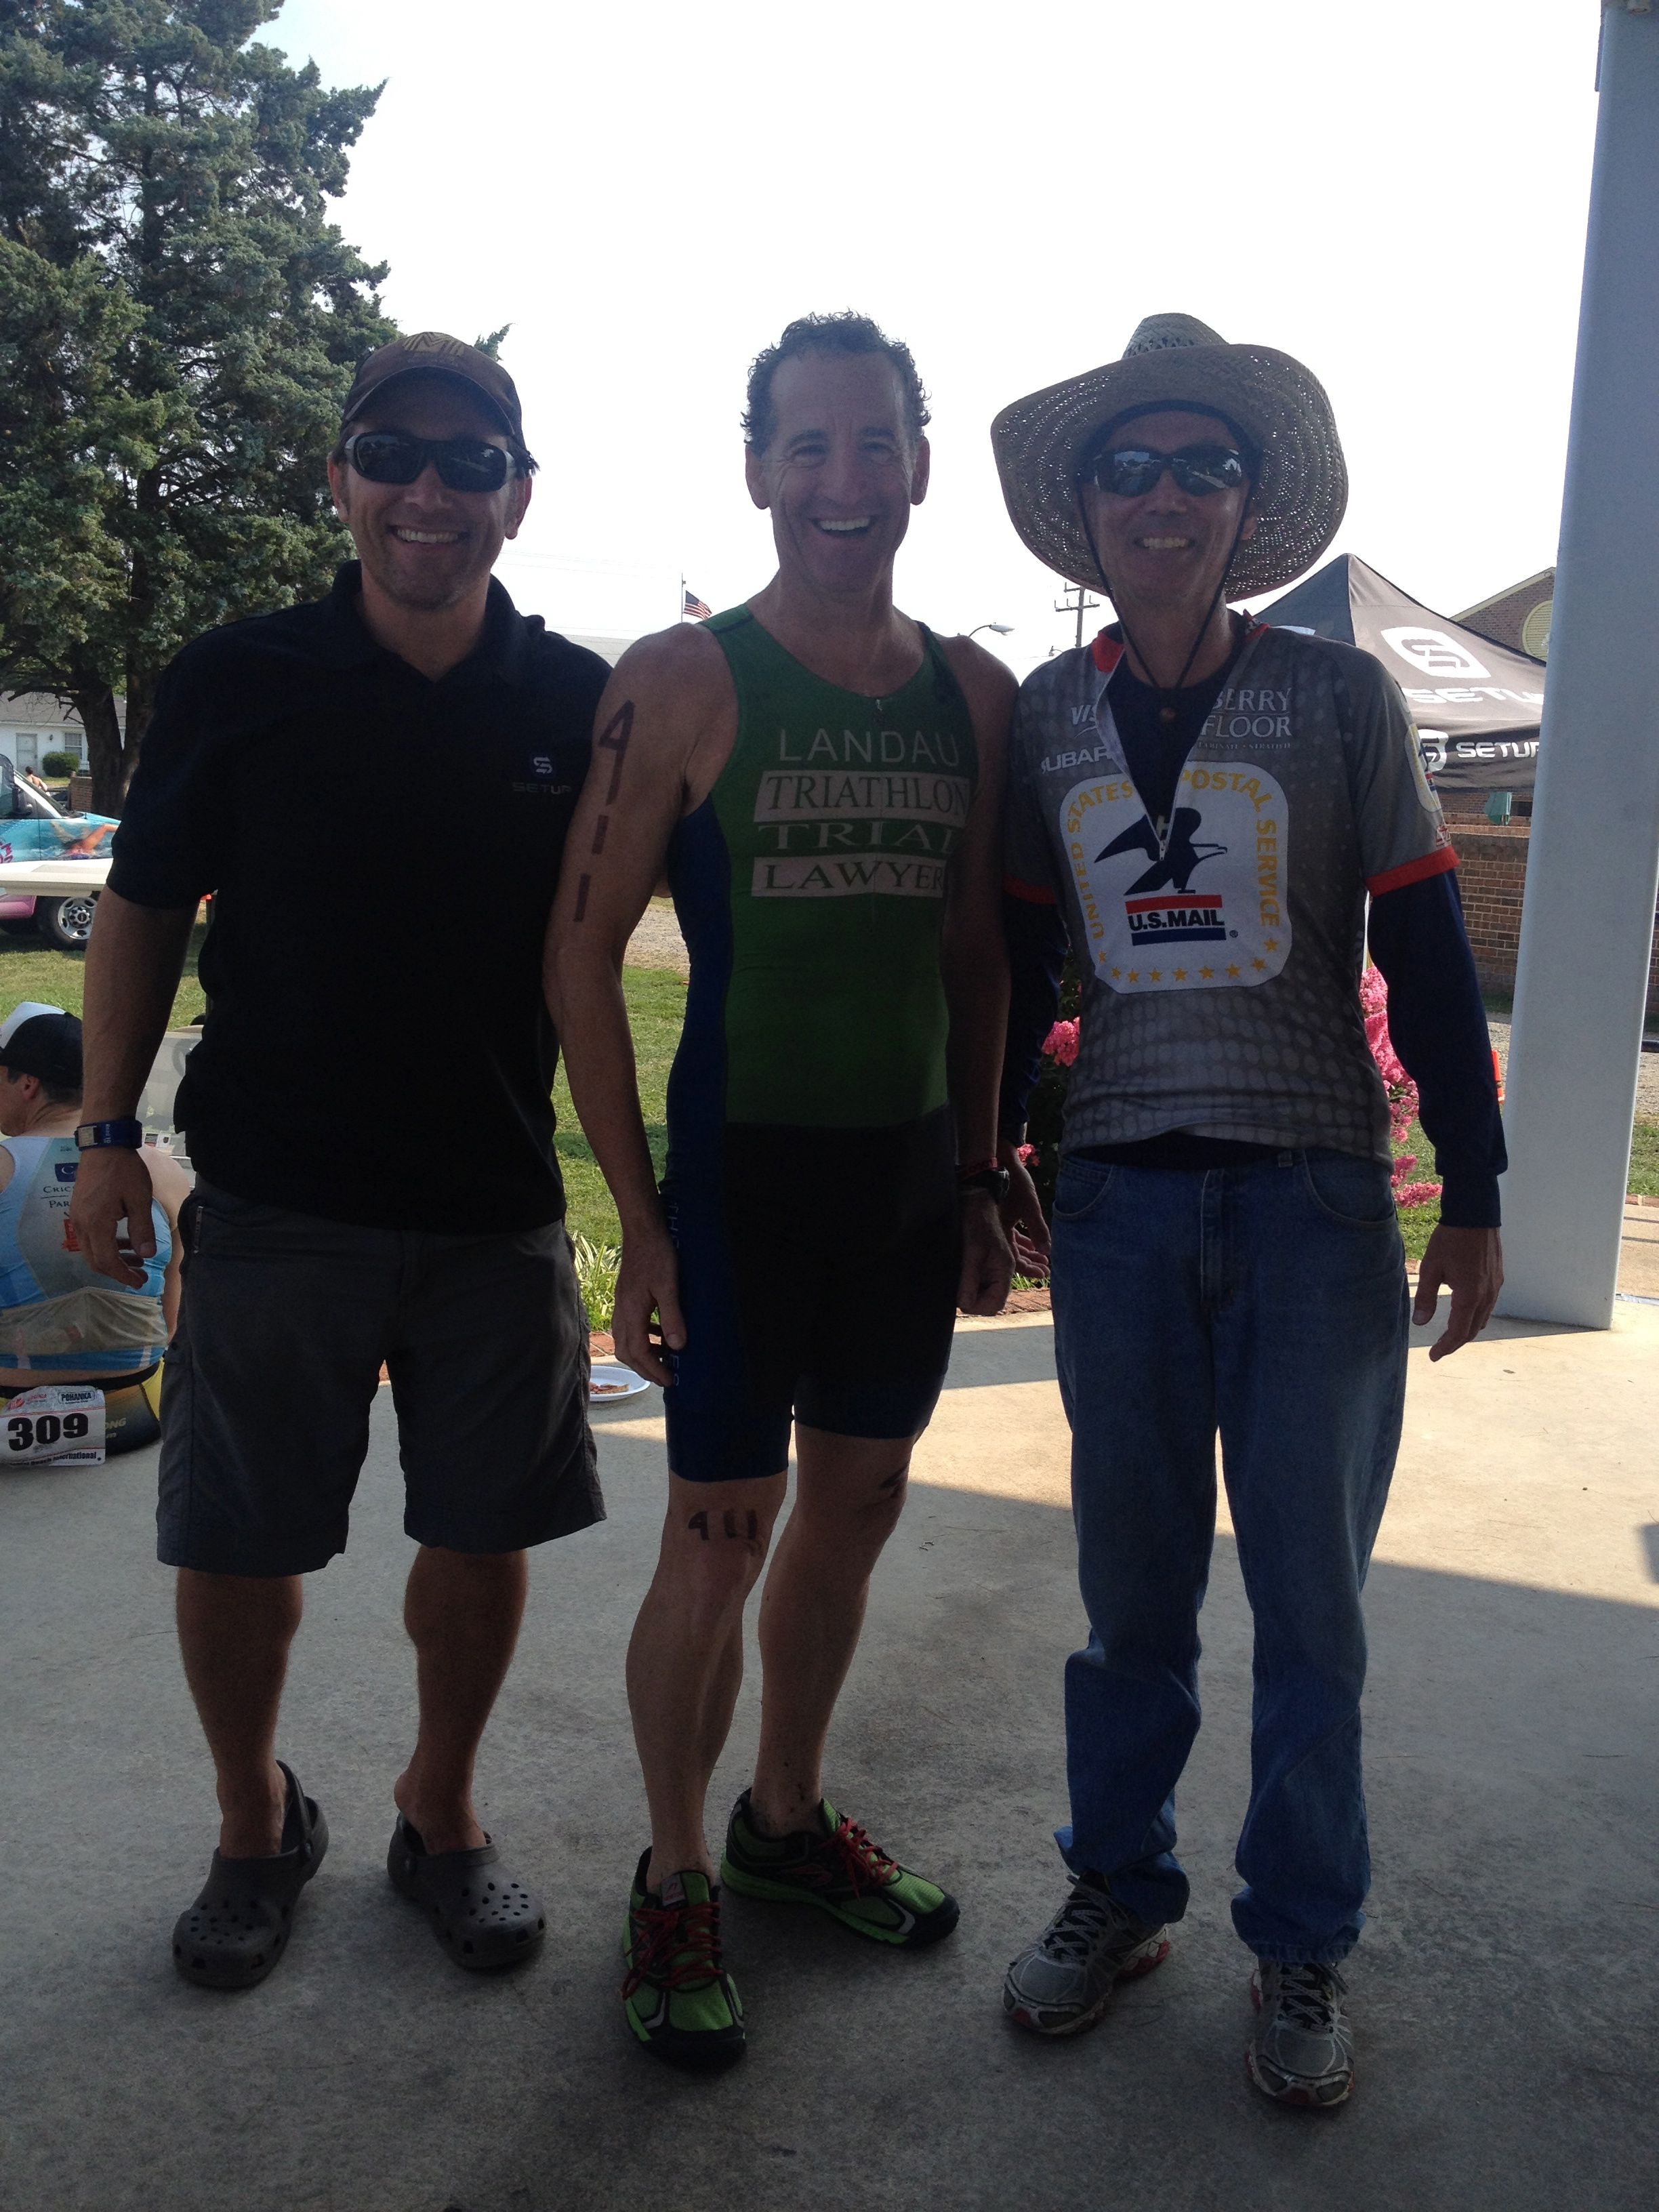 SetUp Inc.'s Greg Hawkins, VTS Sponsor Doug Landau & Terry McLaughlin of the YMCA after the 2014 Colonial Beach Triathlons